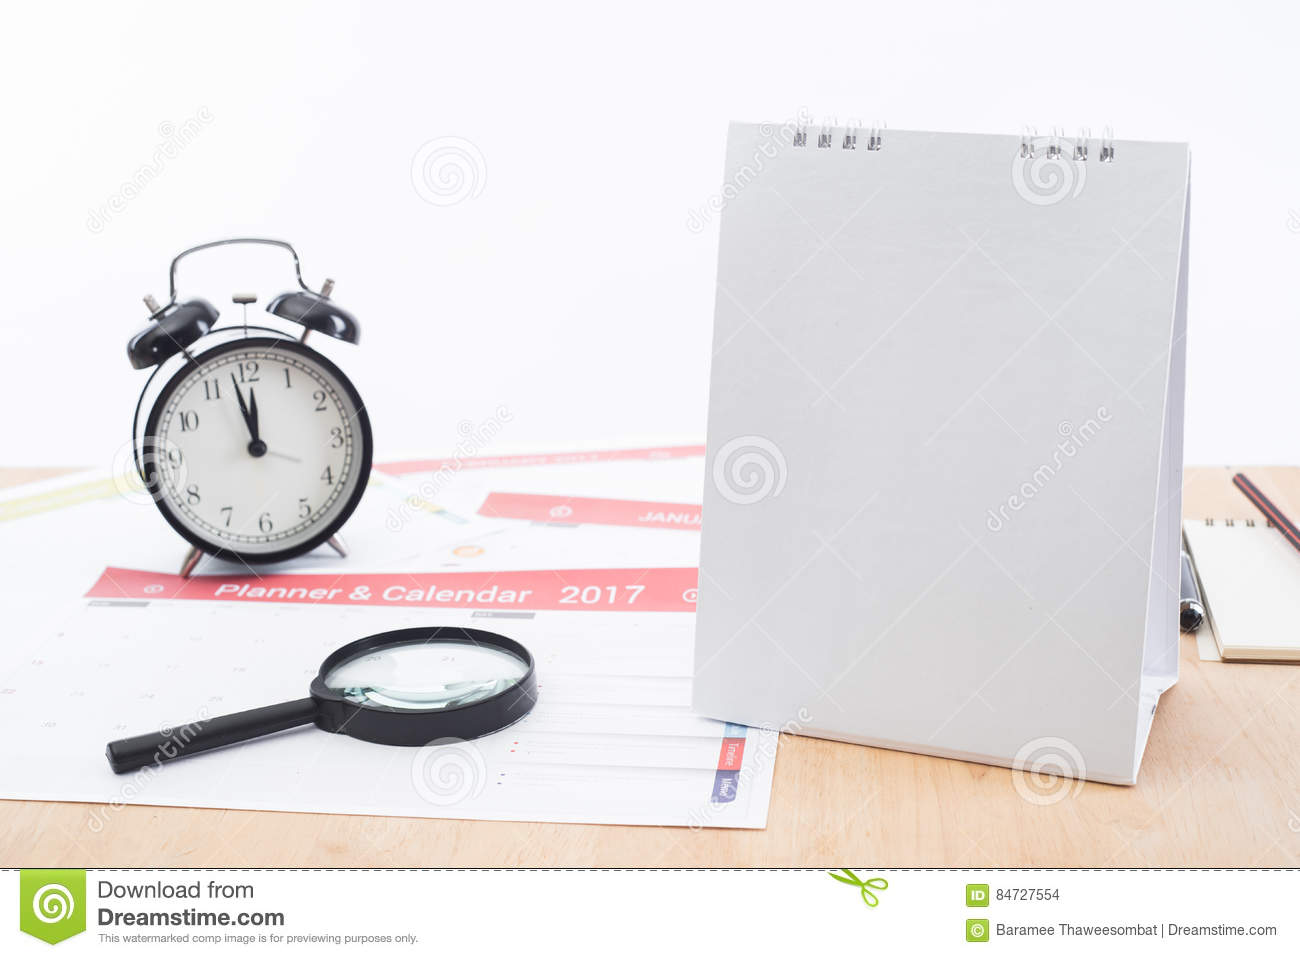 magnifier and clock with business calender planner 2017 on desk